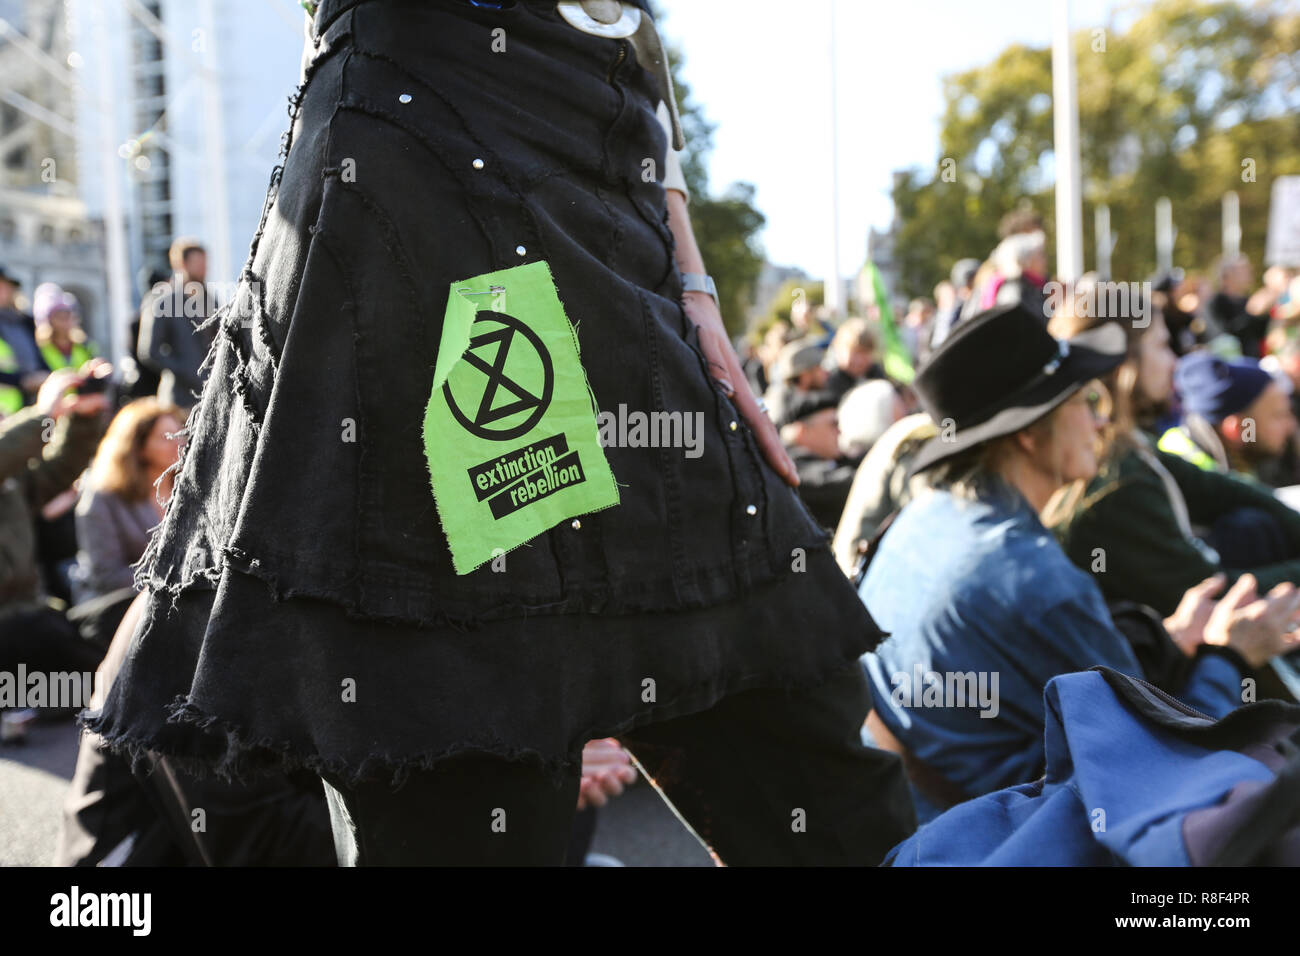 Extinction Rebellion demonstrate against climate change in Parliament square by blocking roads and locking on - Stock Image